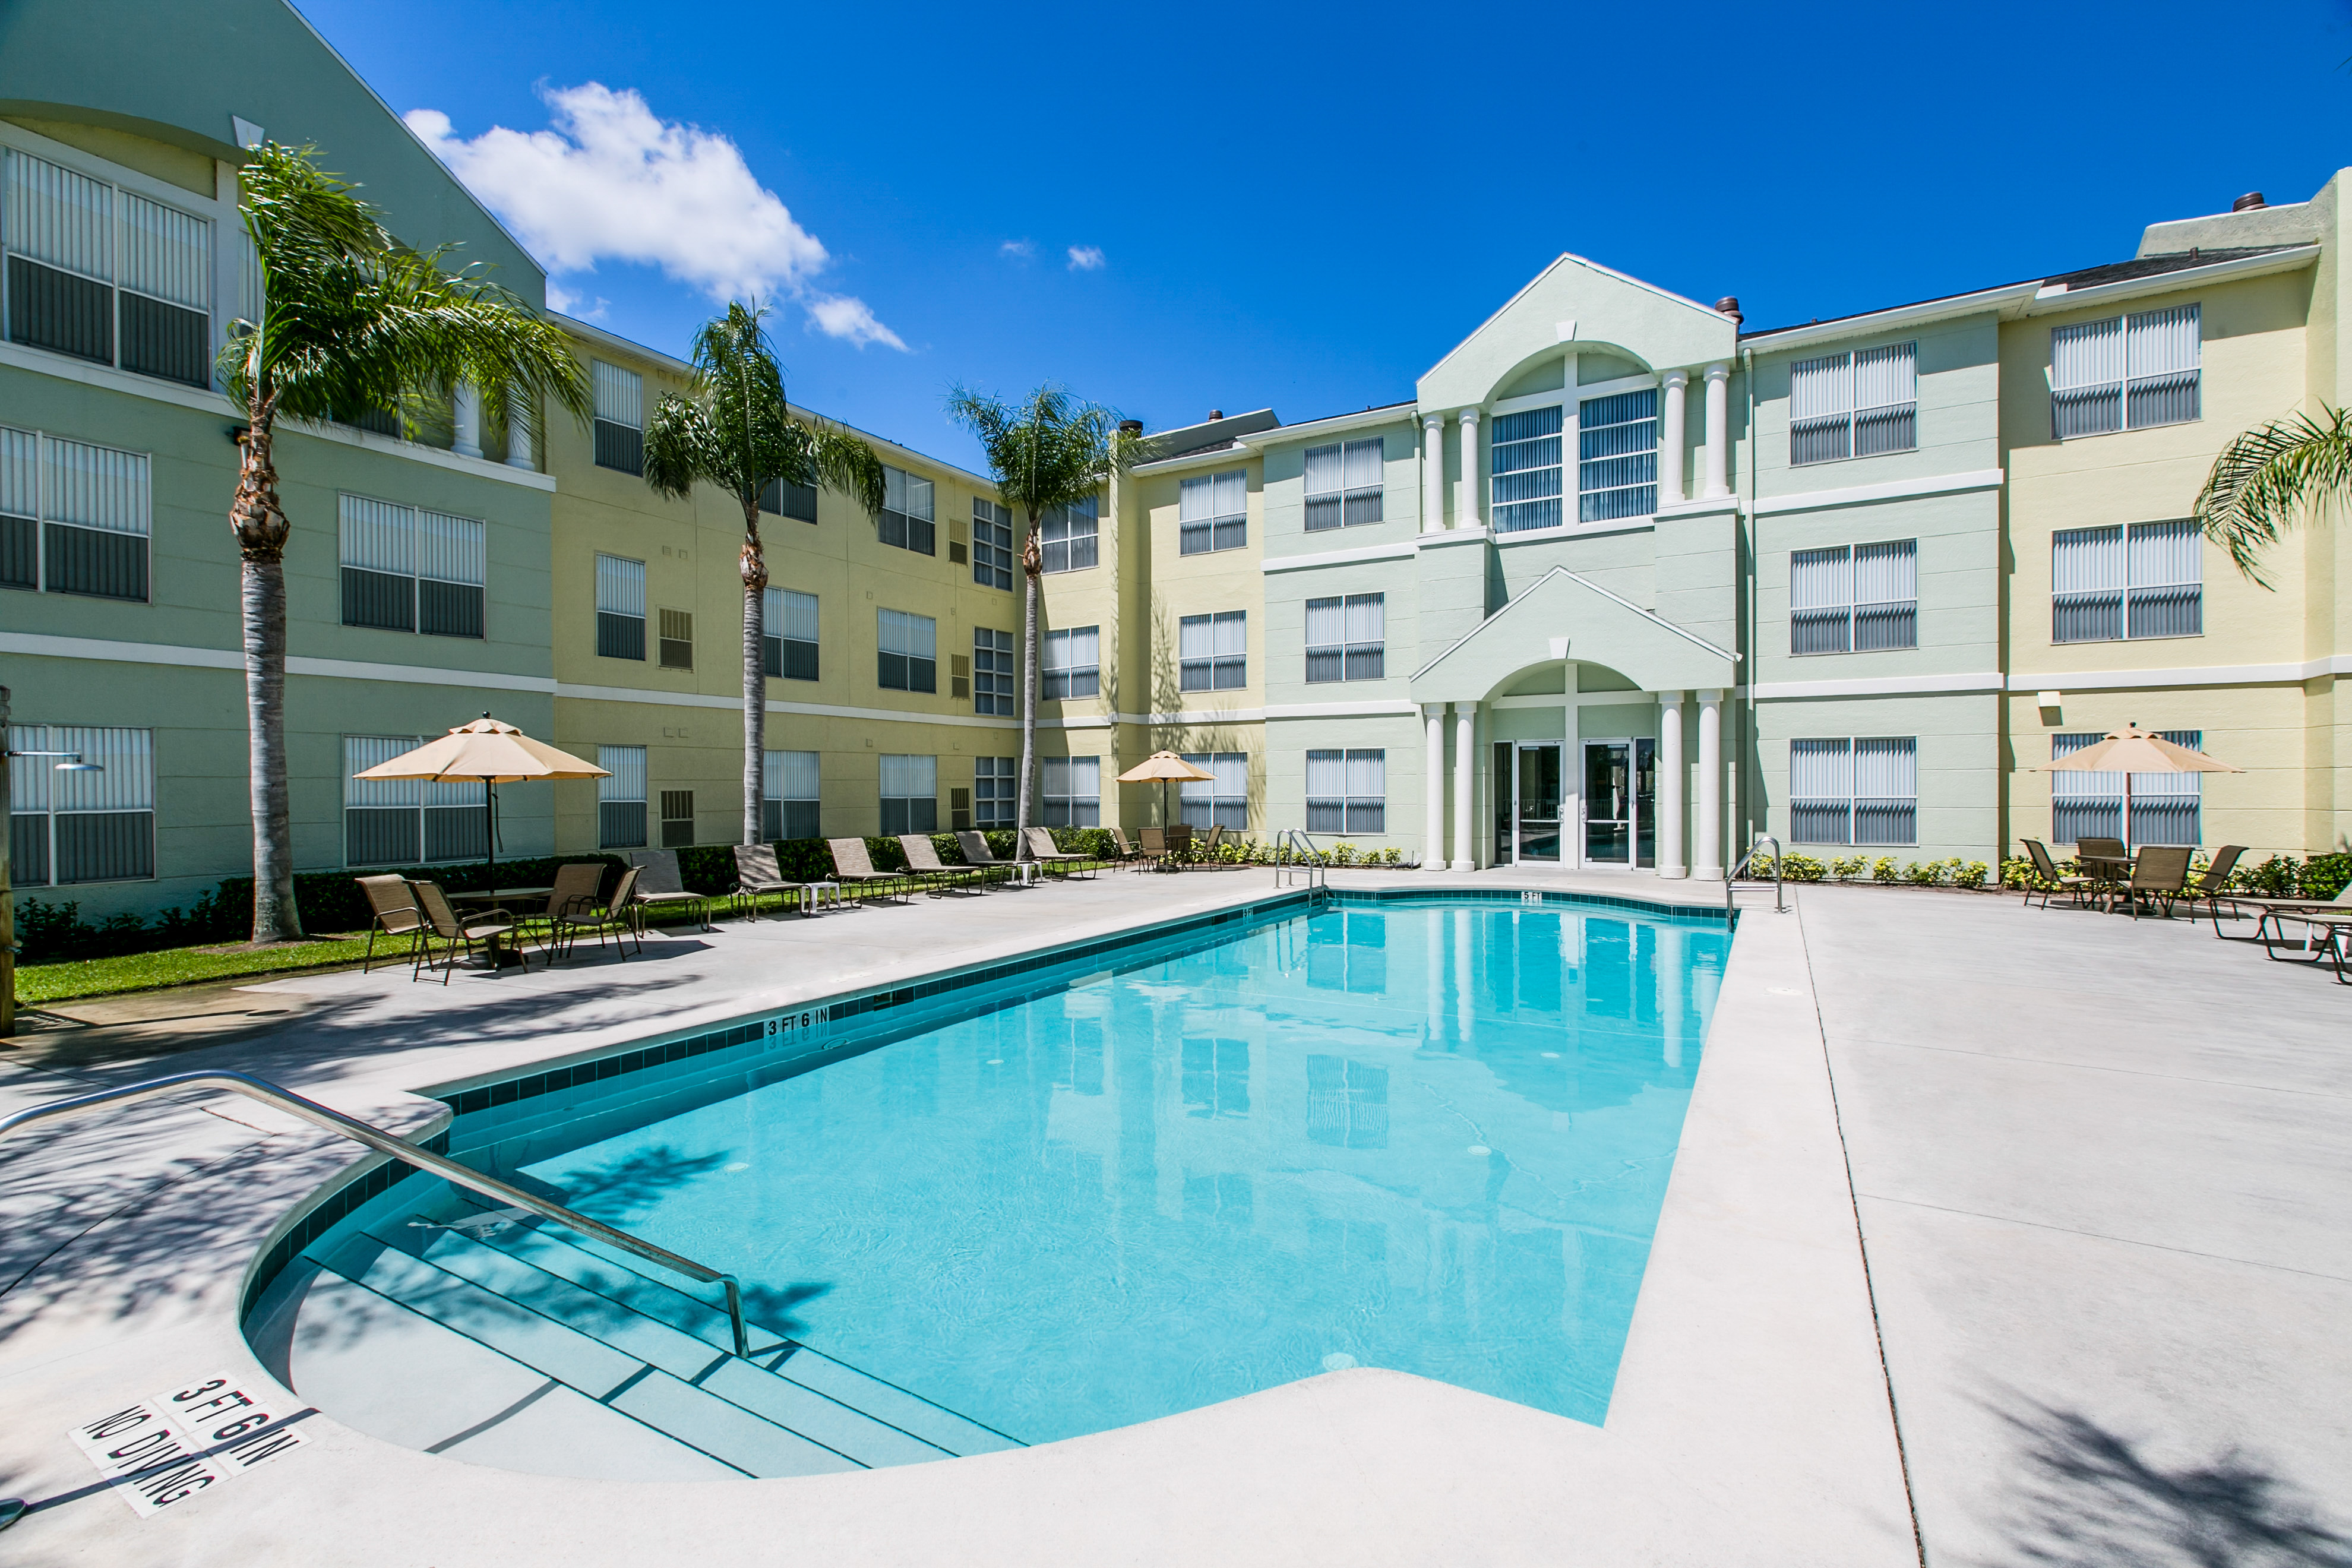 1 Bedroom Apartments Raleigh Nc Properties Lakeside Capital